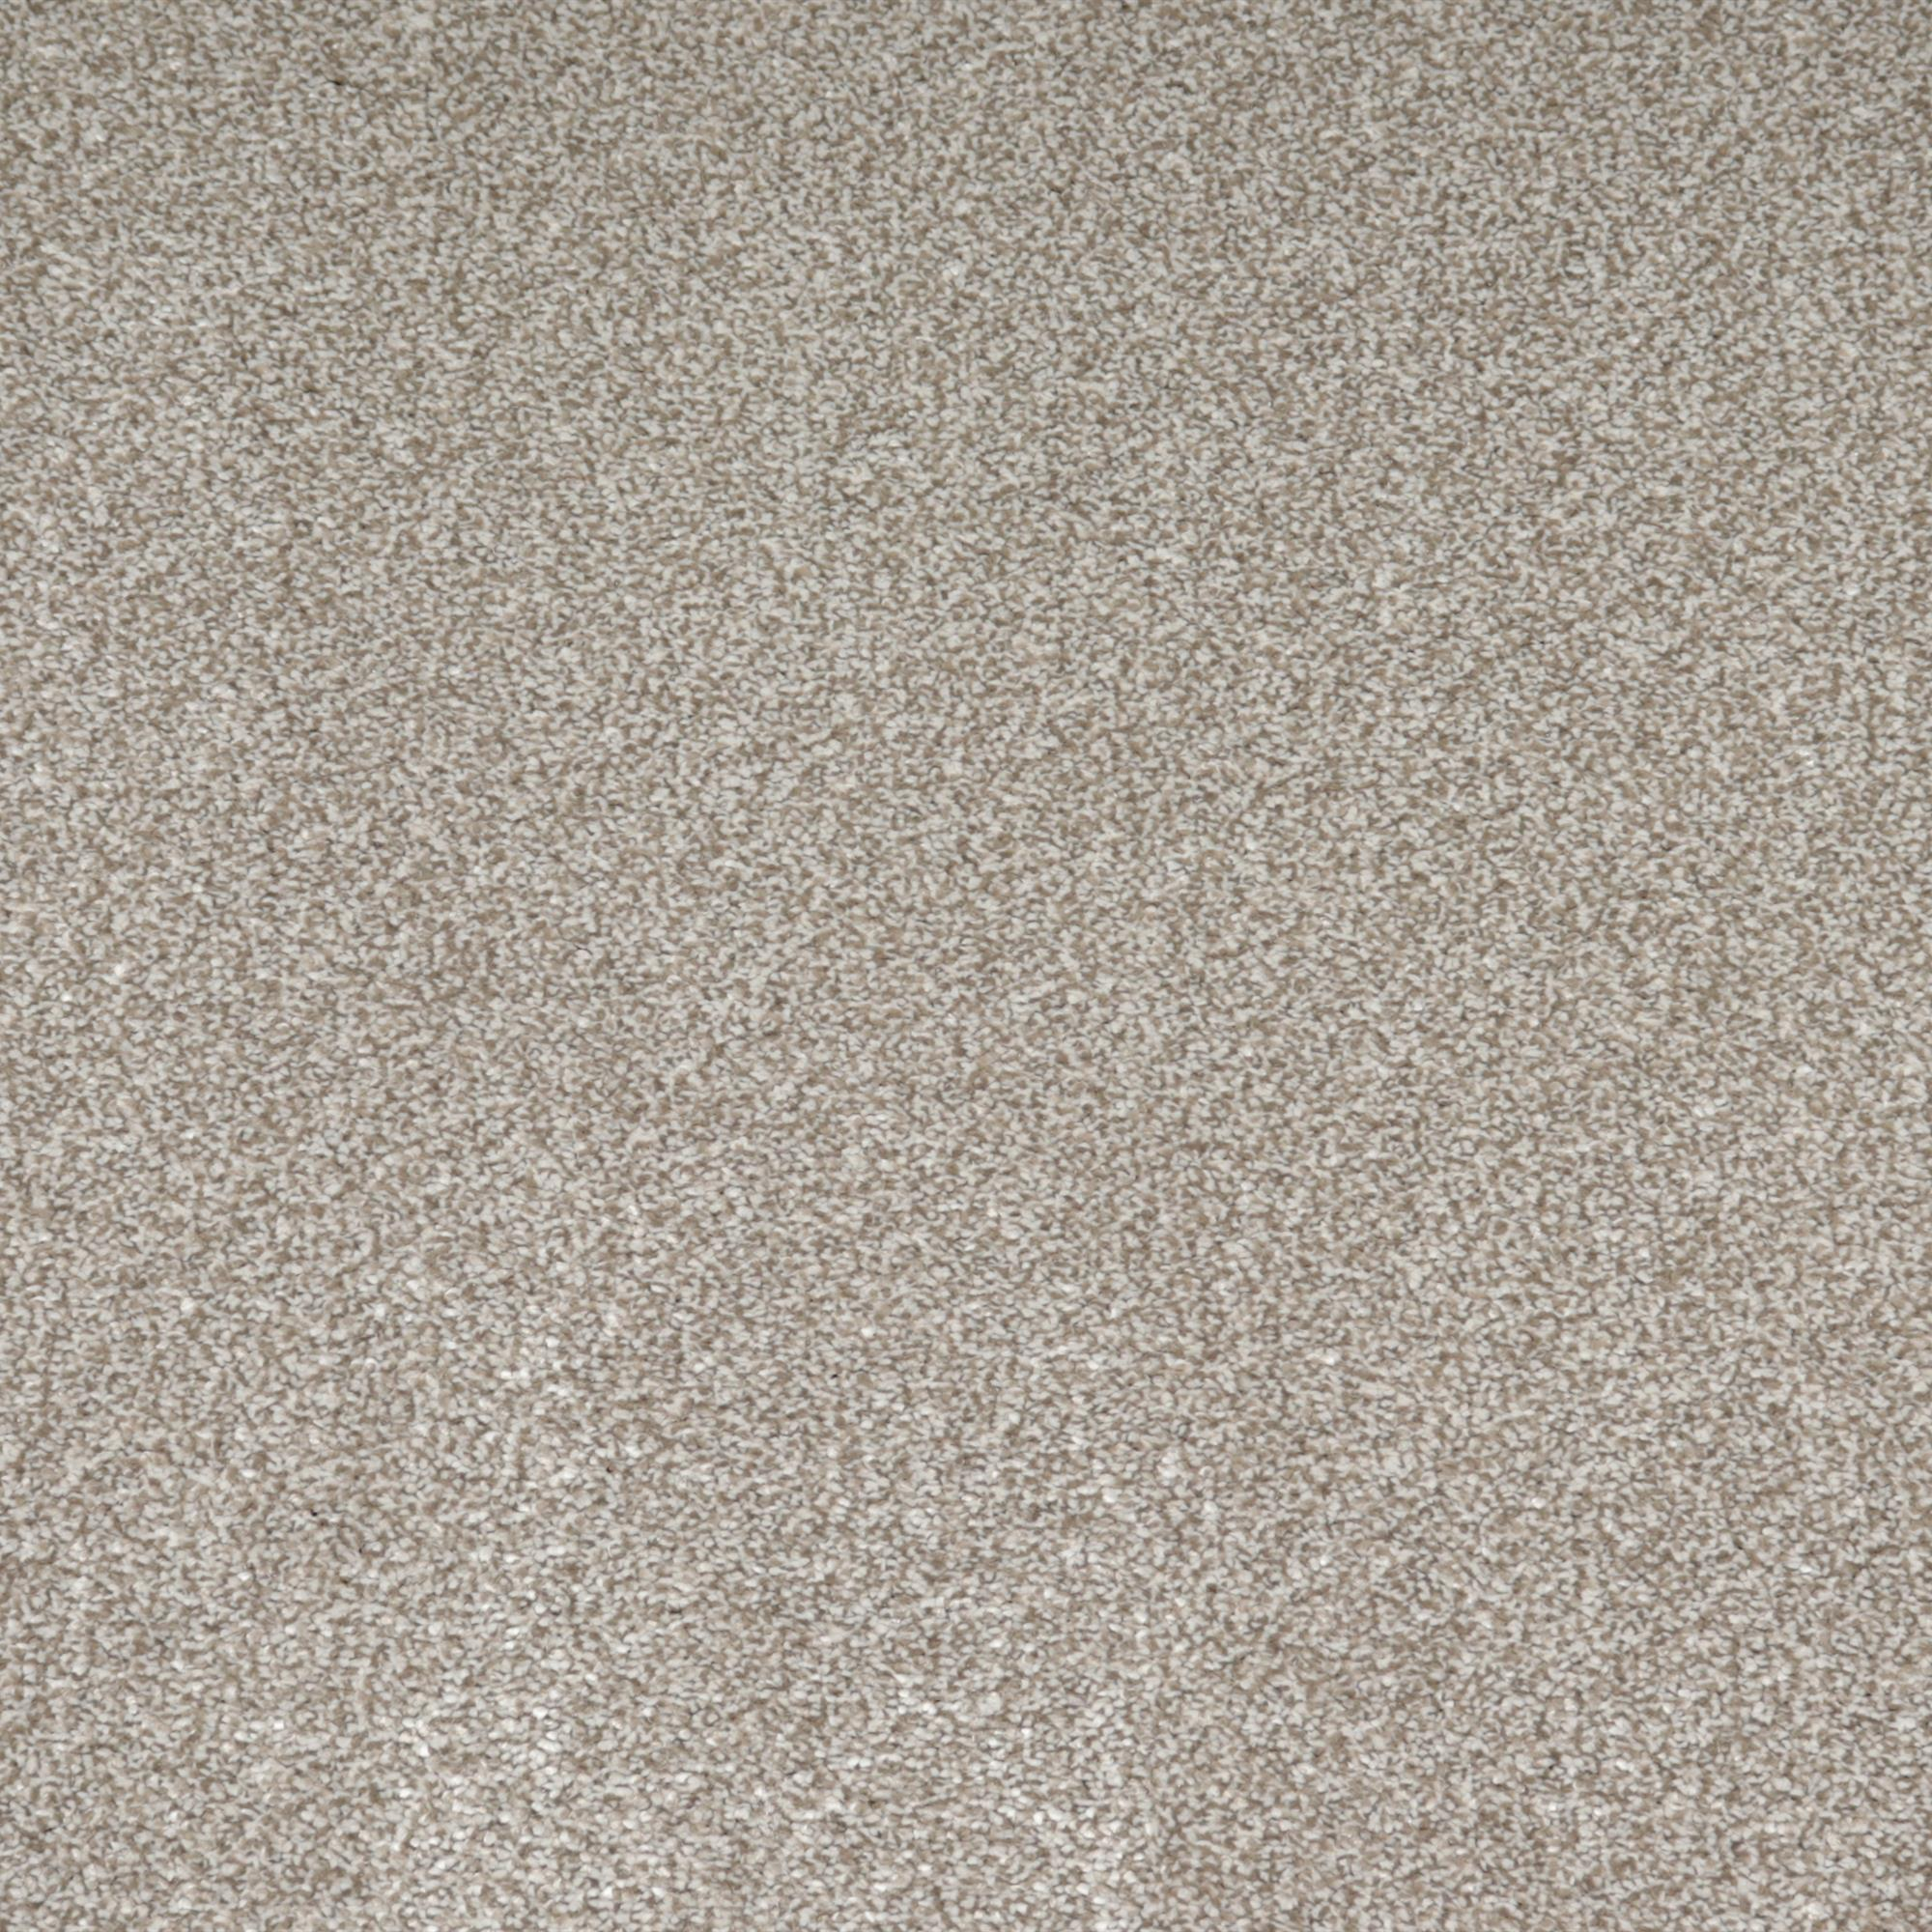 Signature Westminster Carpet, Westminster Ech7032 Pinvin, swatch